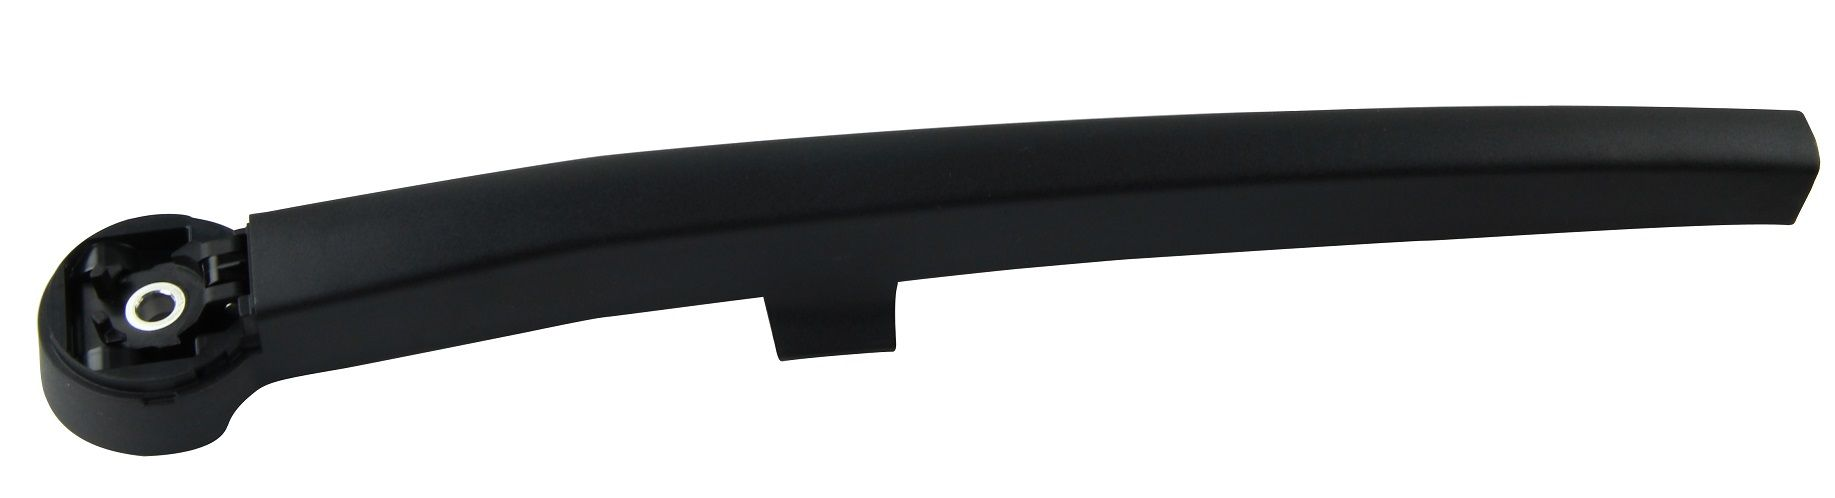 Mopar Rear Wiper Arm for 2005-2010 Grand Cherokee WK